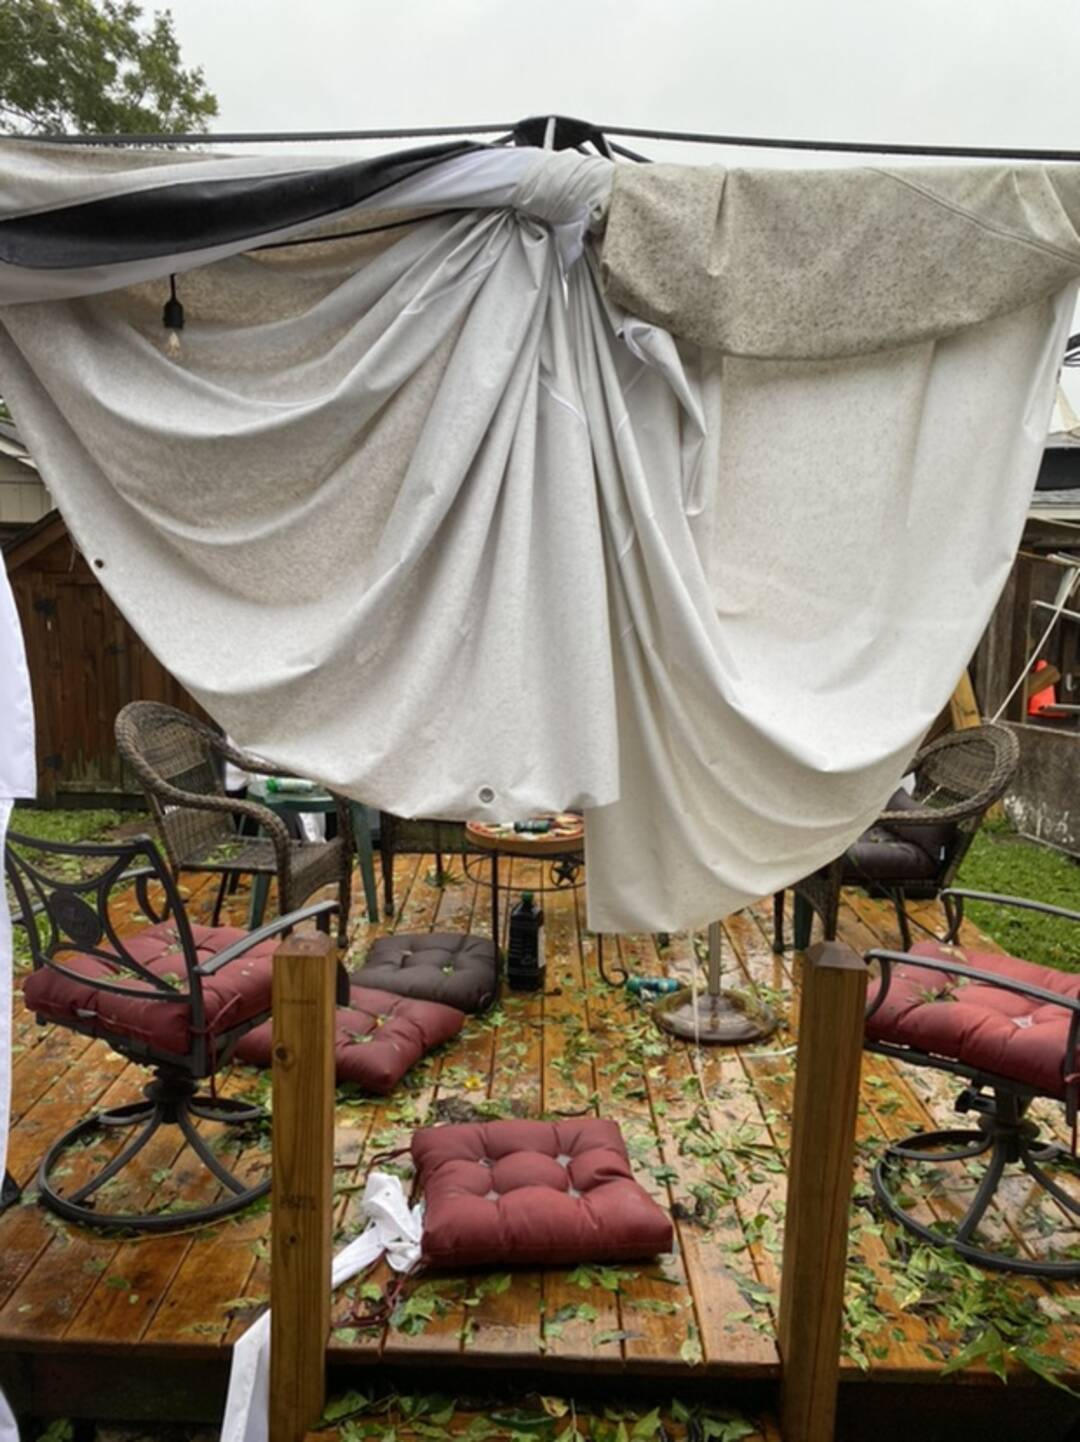 Another view of damage to our canopy in the backyard